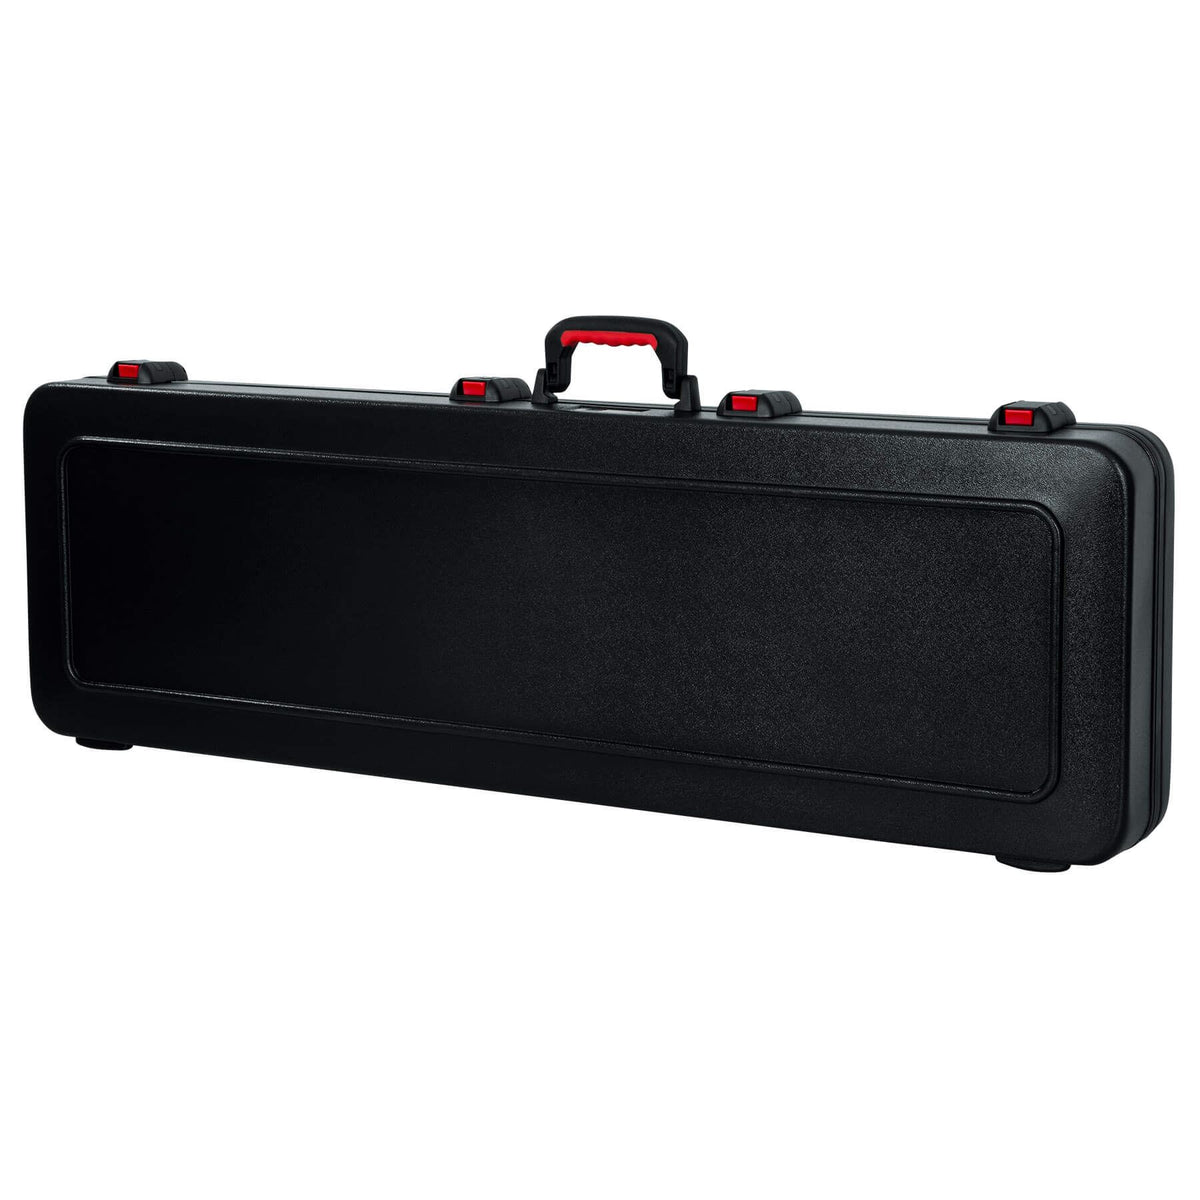 Gator ATA Bass Guitar Case fits Fender Geddy Lee Jazz Bass